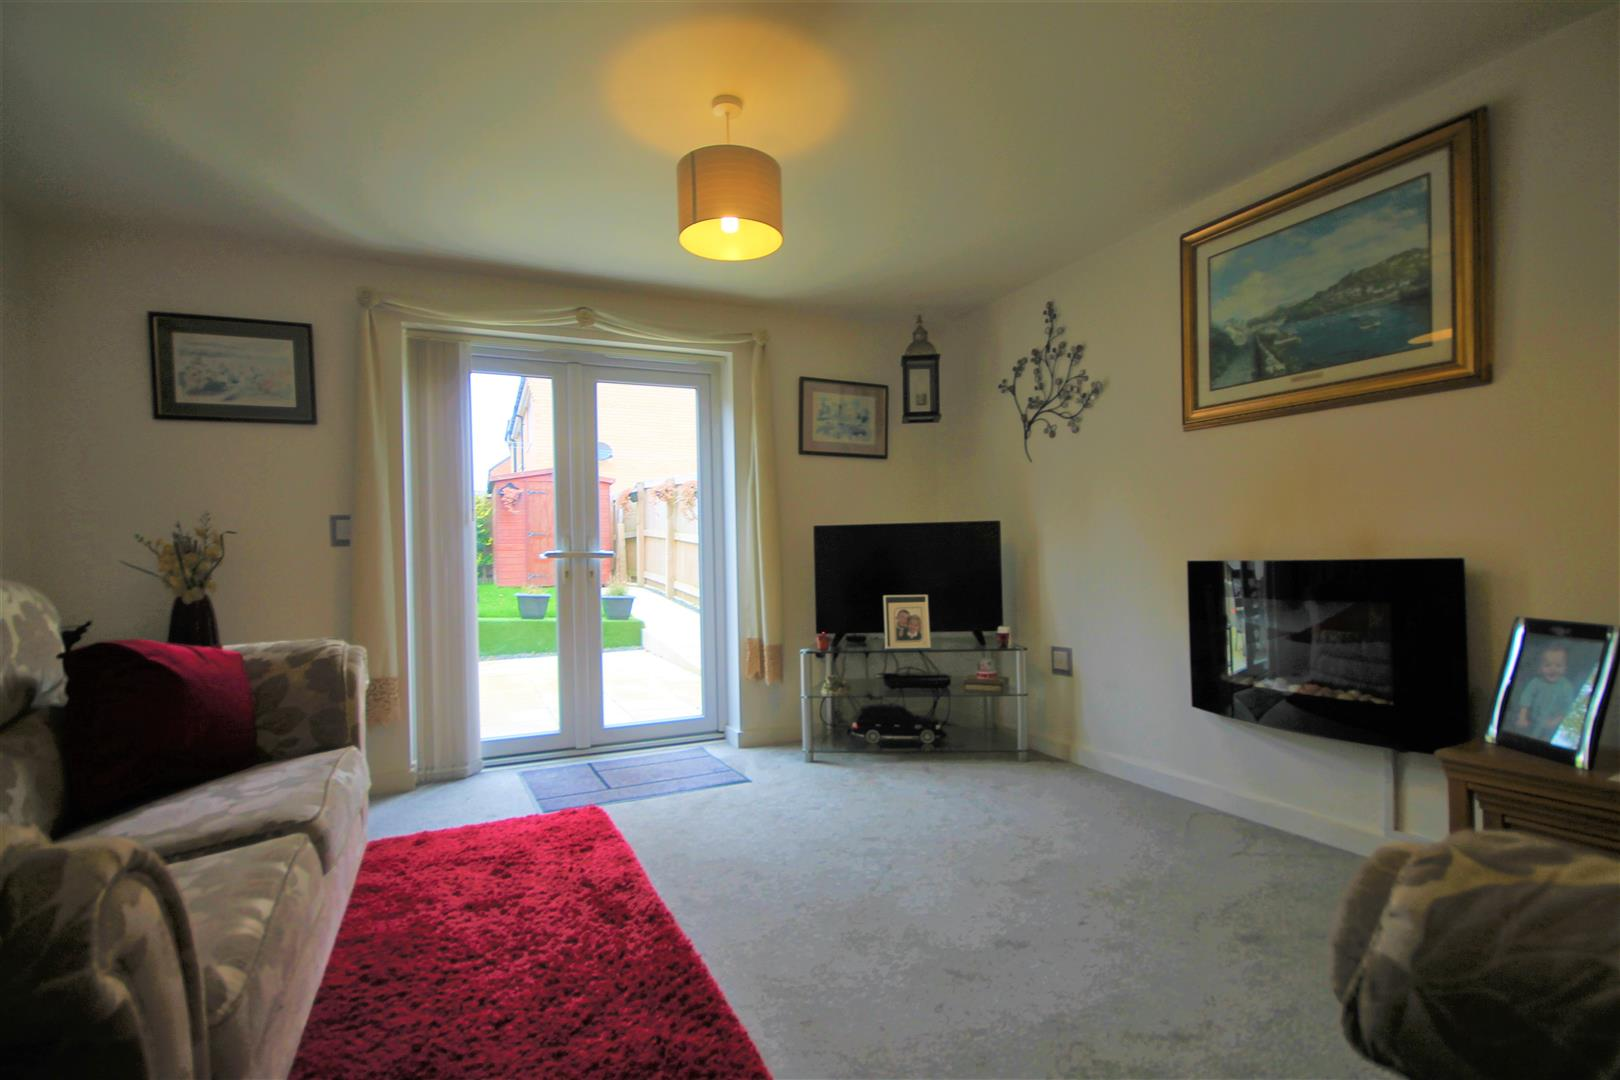 Lazonby Way Newcastle Upon Tyne, 2 Bedrooms  House - link detached ,Sold (STC)